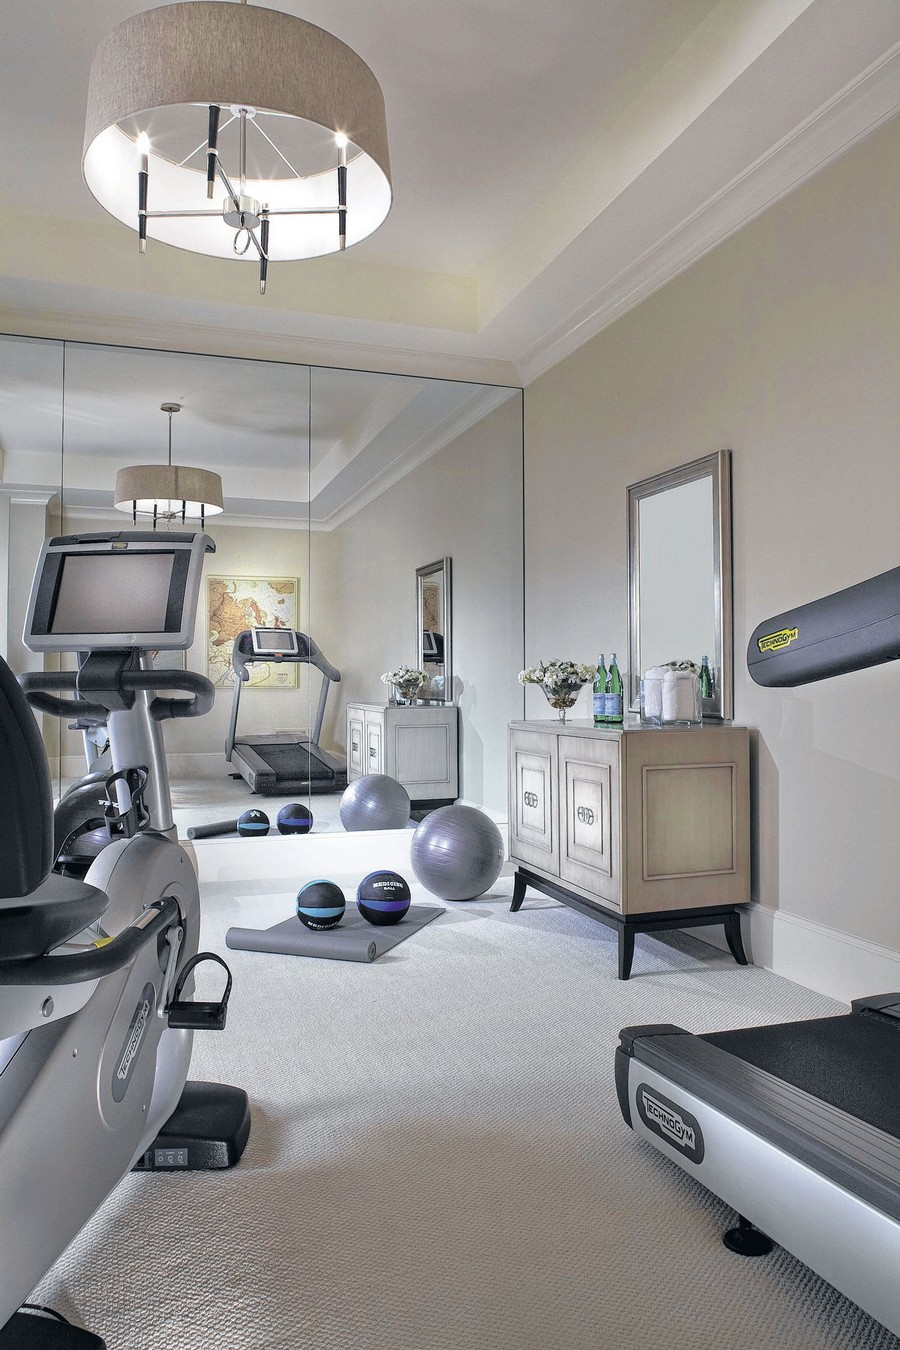 Home gym interior design tips home interior design for House design interior decorating